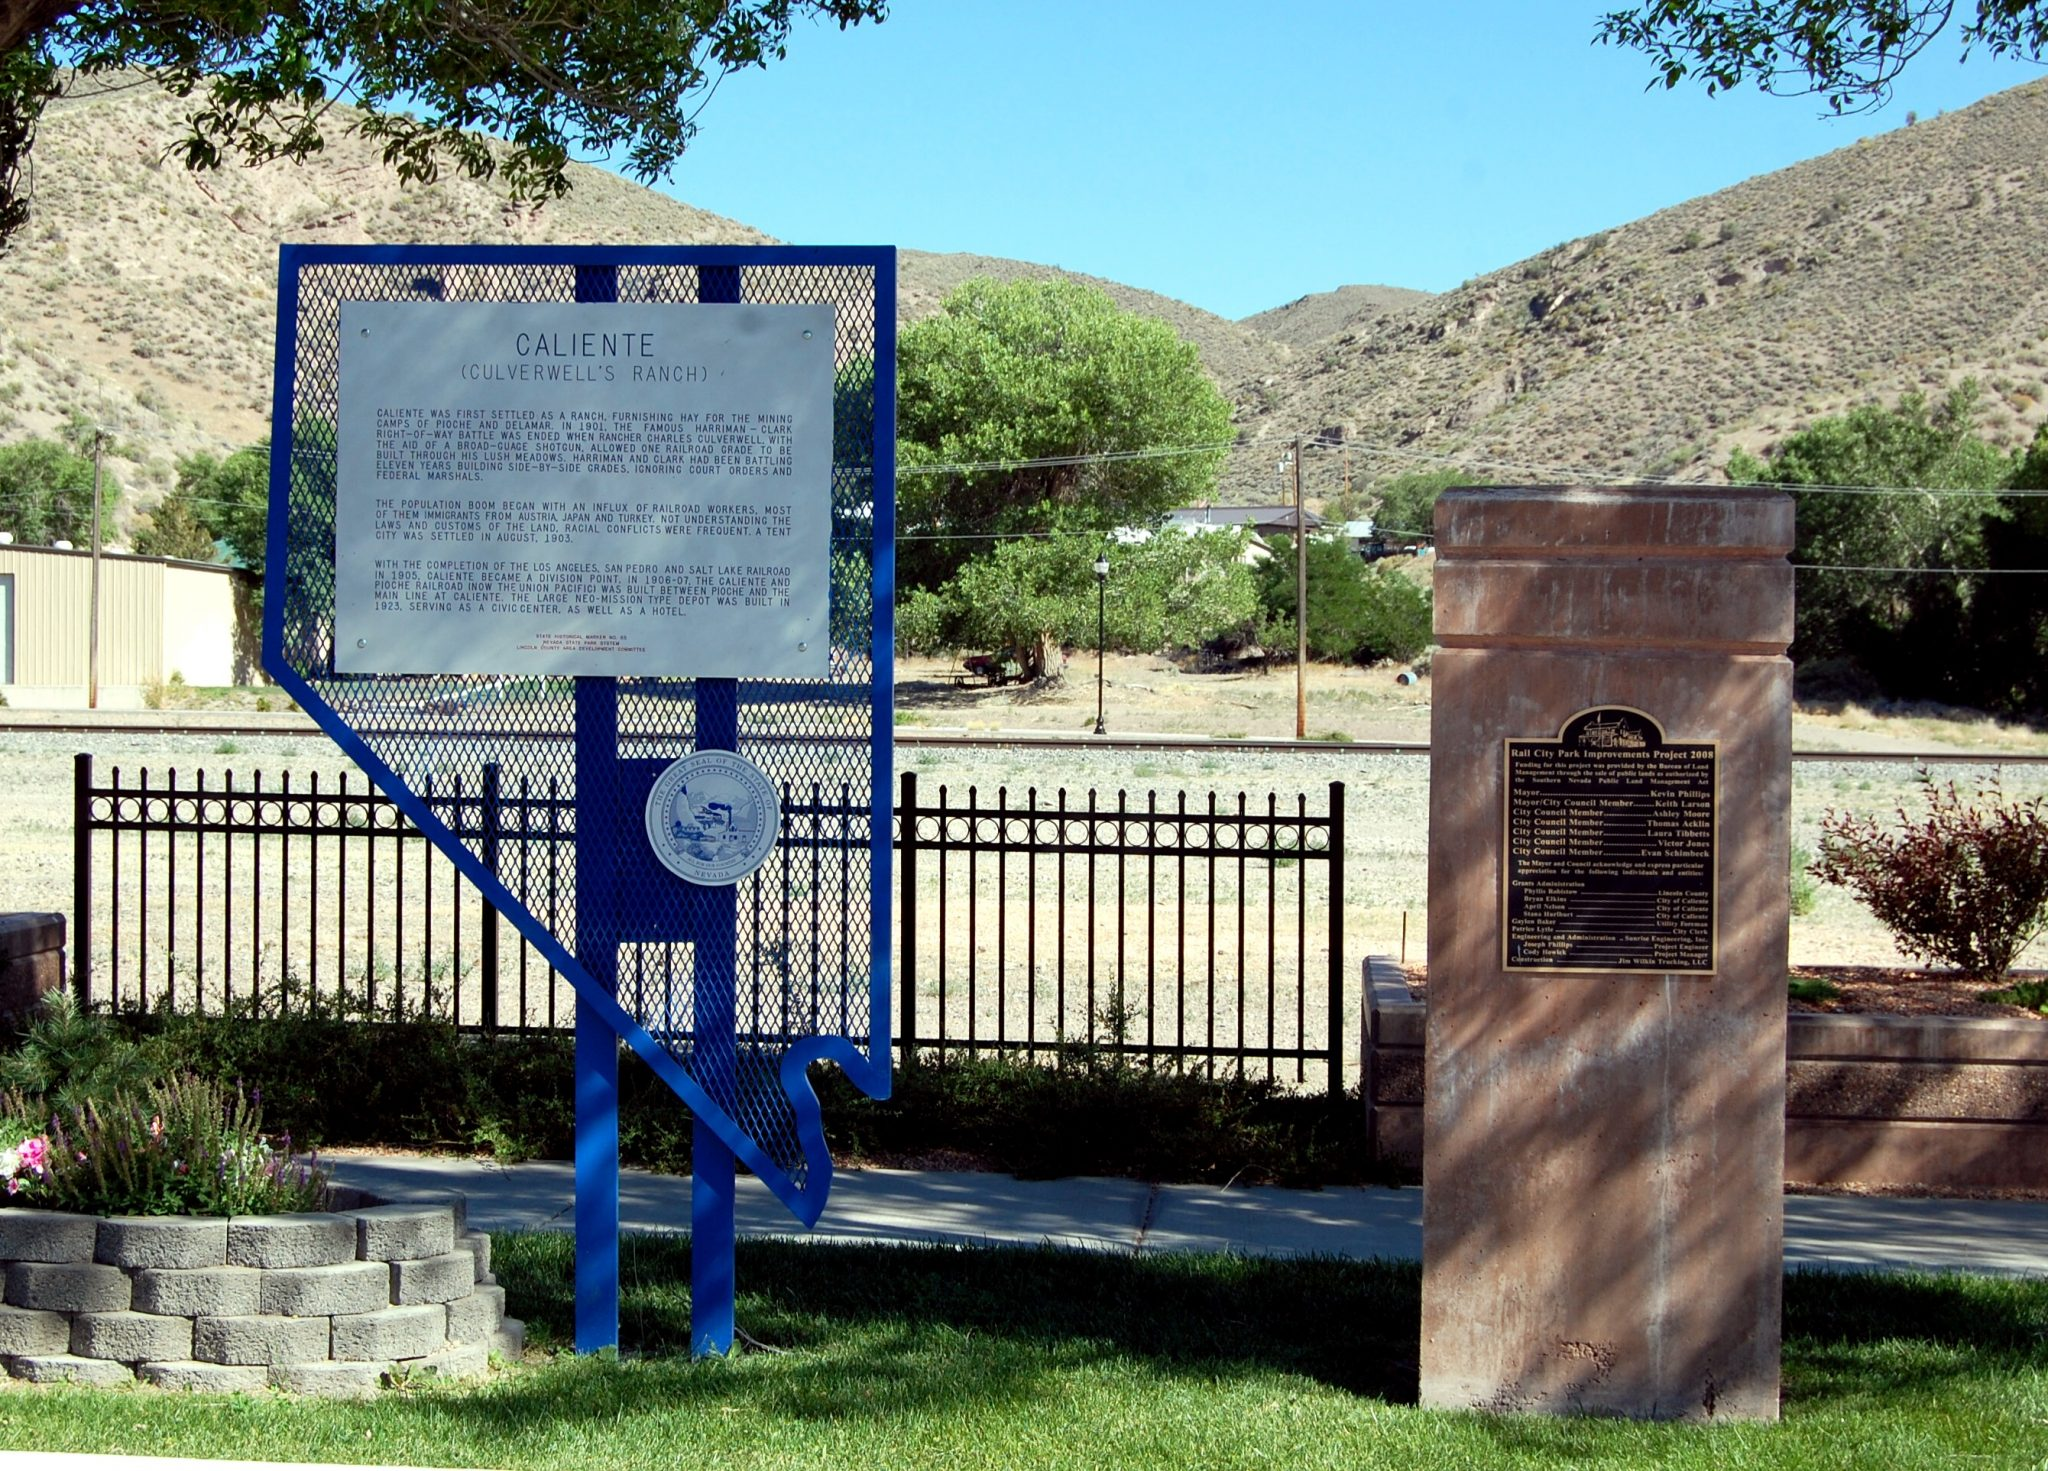 Caliente historical marker remembered